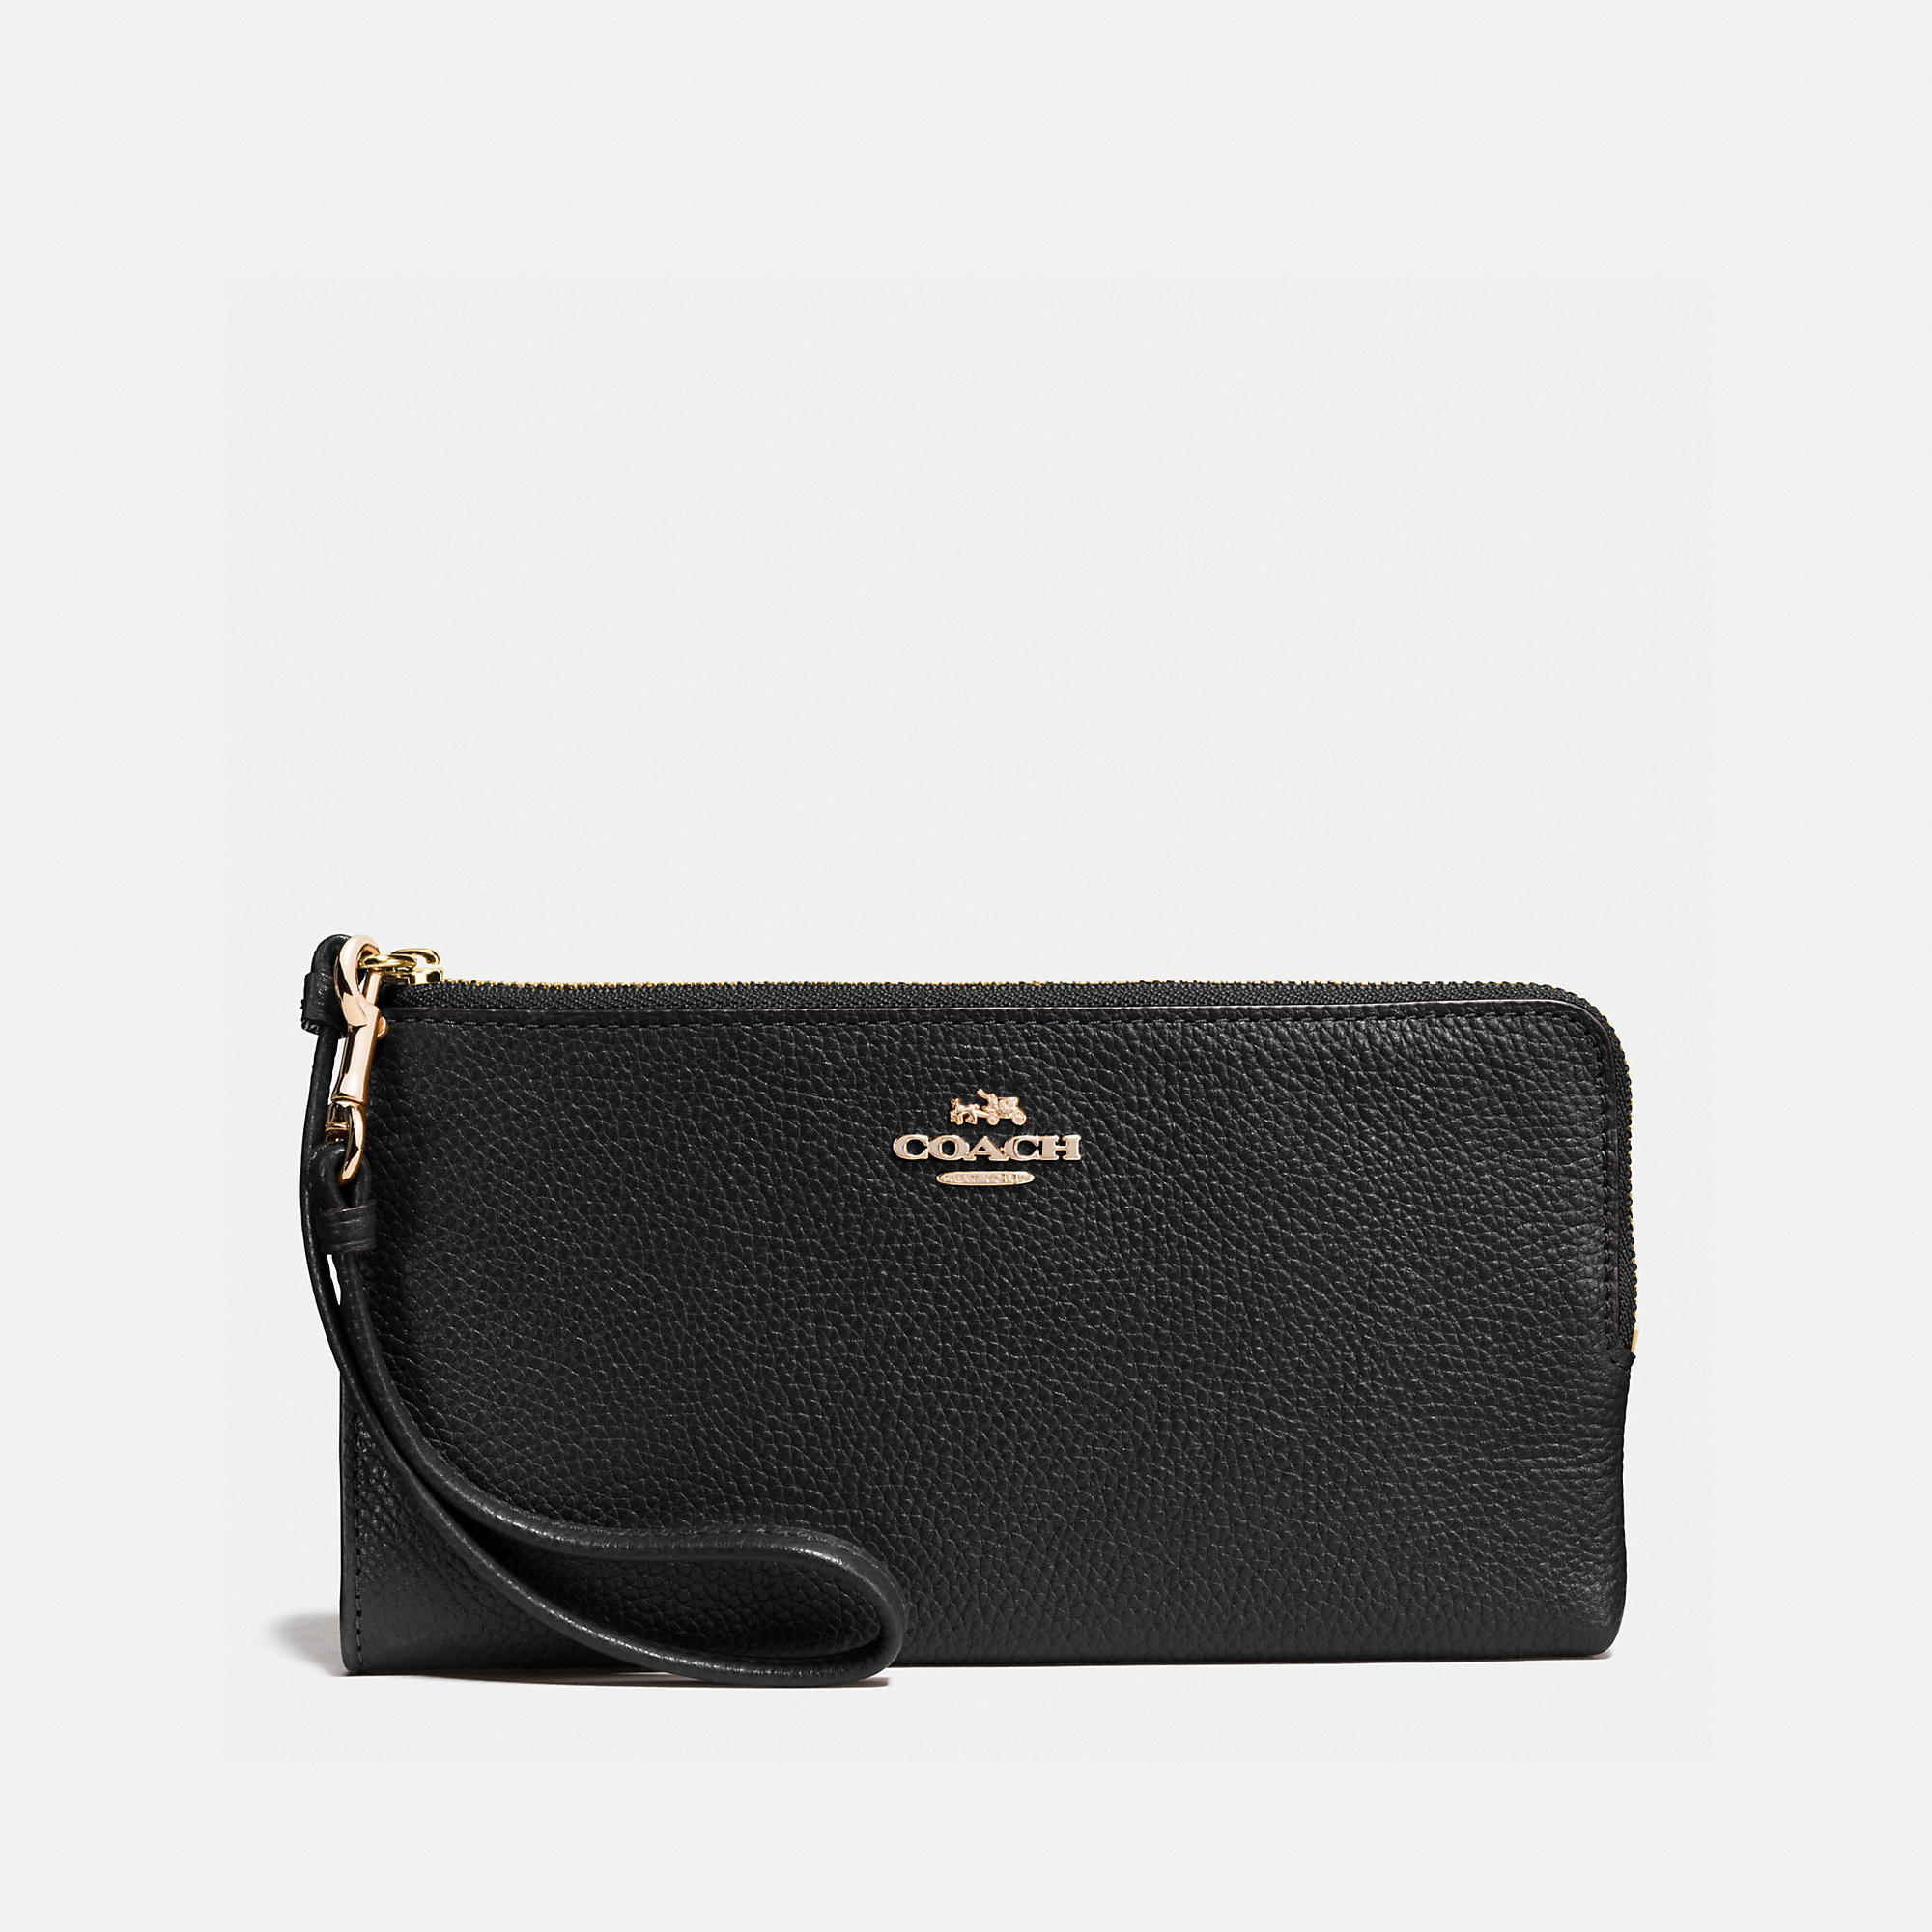 Coach Zip Wallet In Polished Pebble Leather